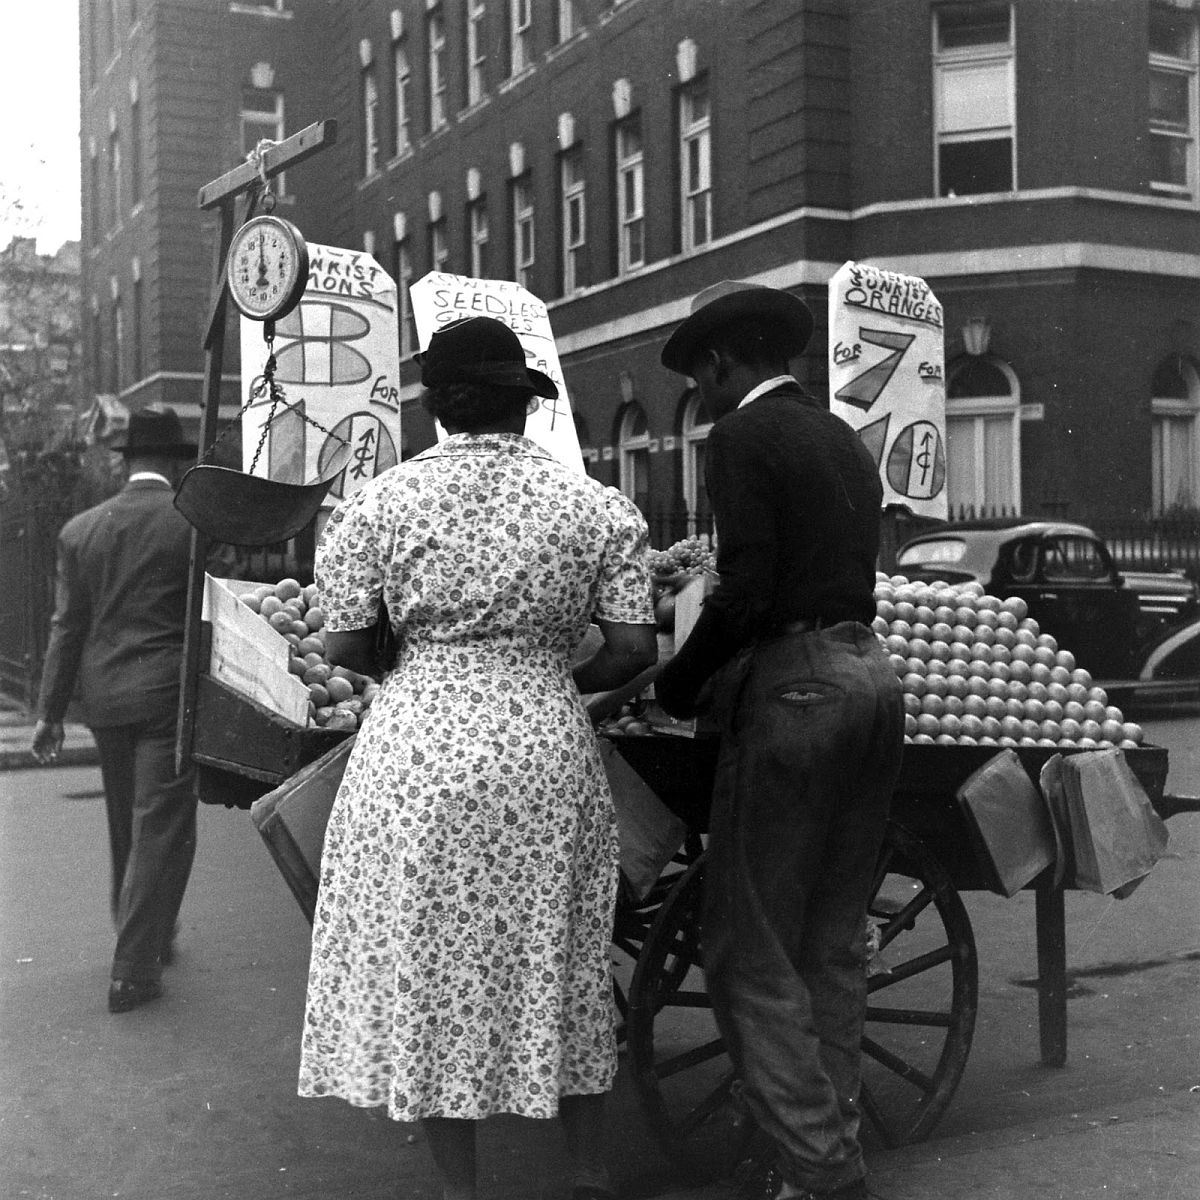 A citrus stand is set up on a Harlem street, 1938.